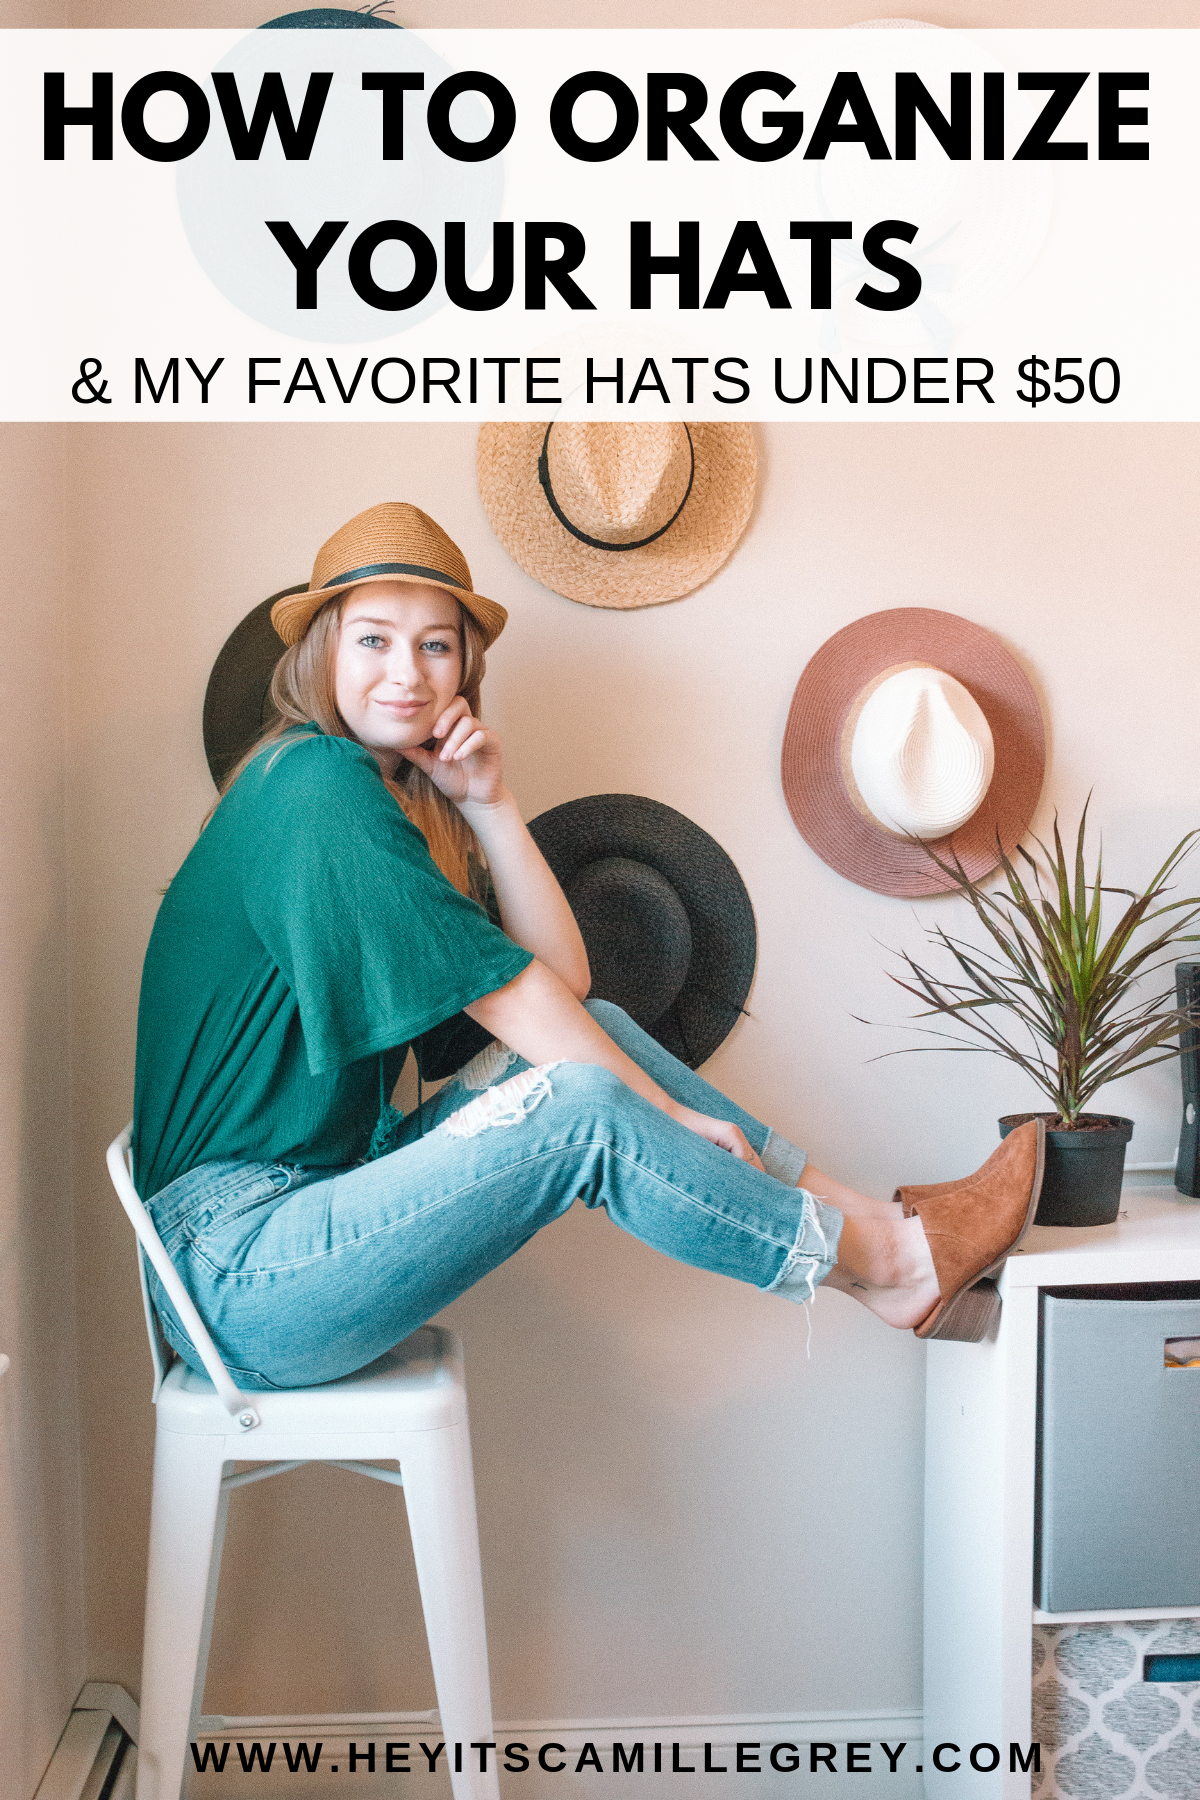 How to Organize Your Hats + My Favorite Hats under $50